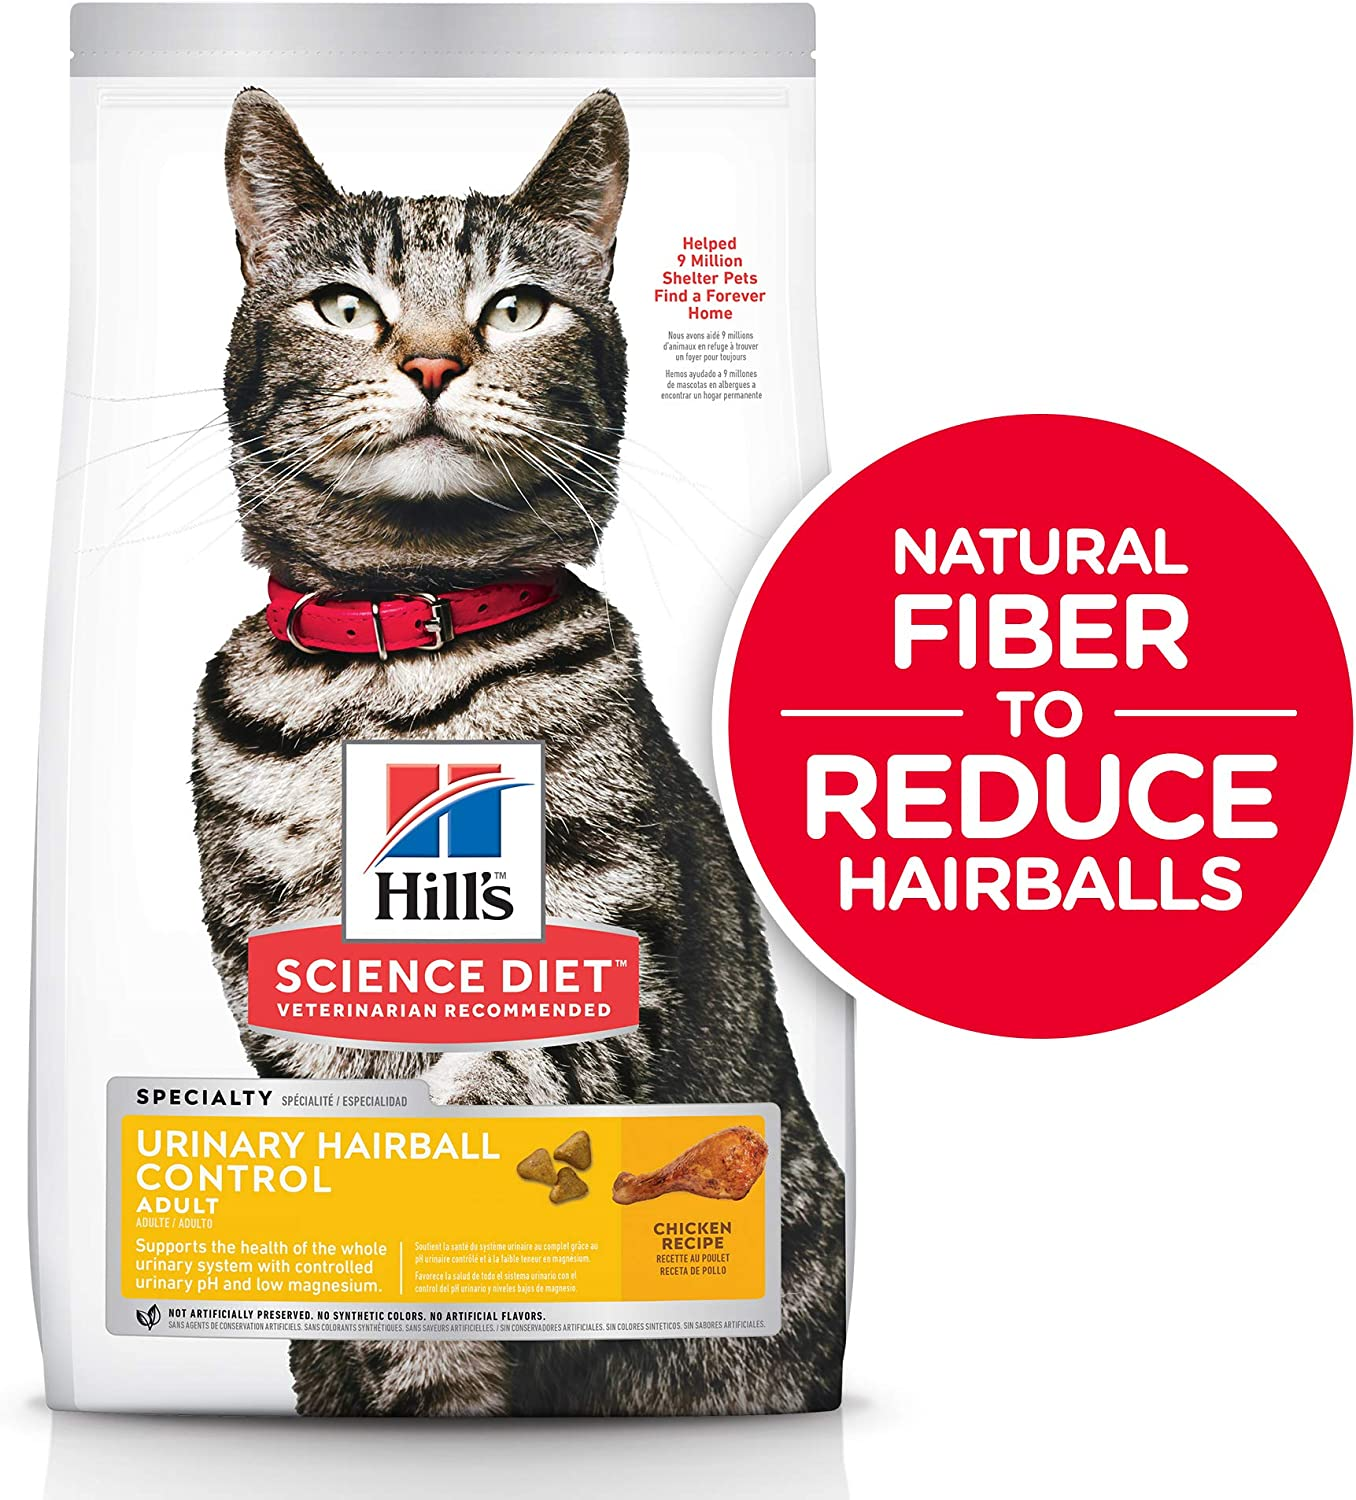 2. Hill's Science Diet Adult Urinary Hairball Control Dry Cat Food